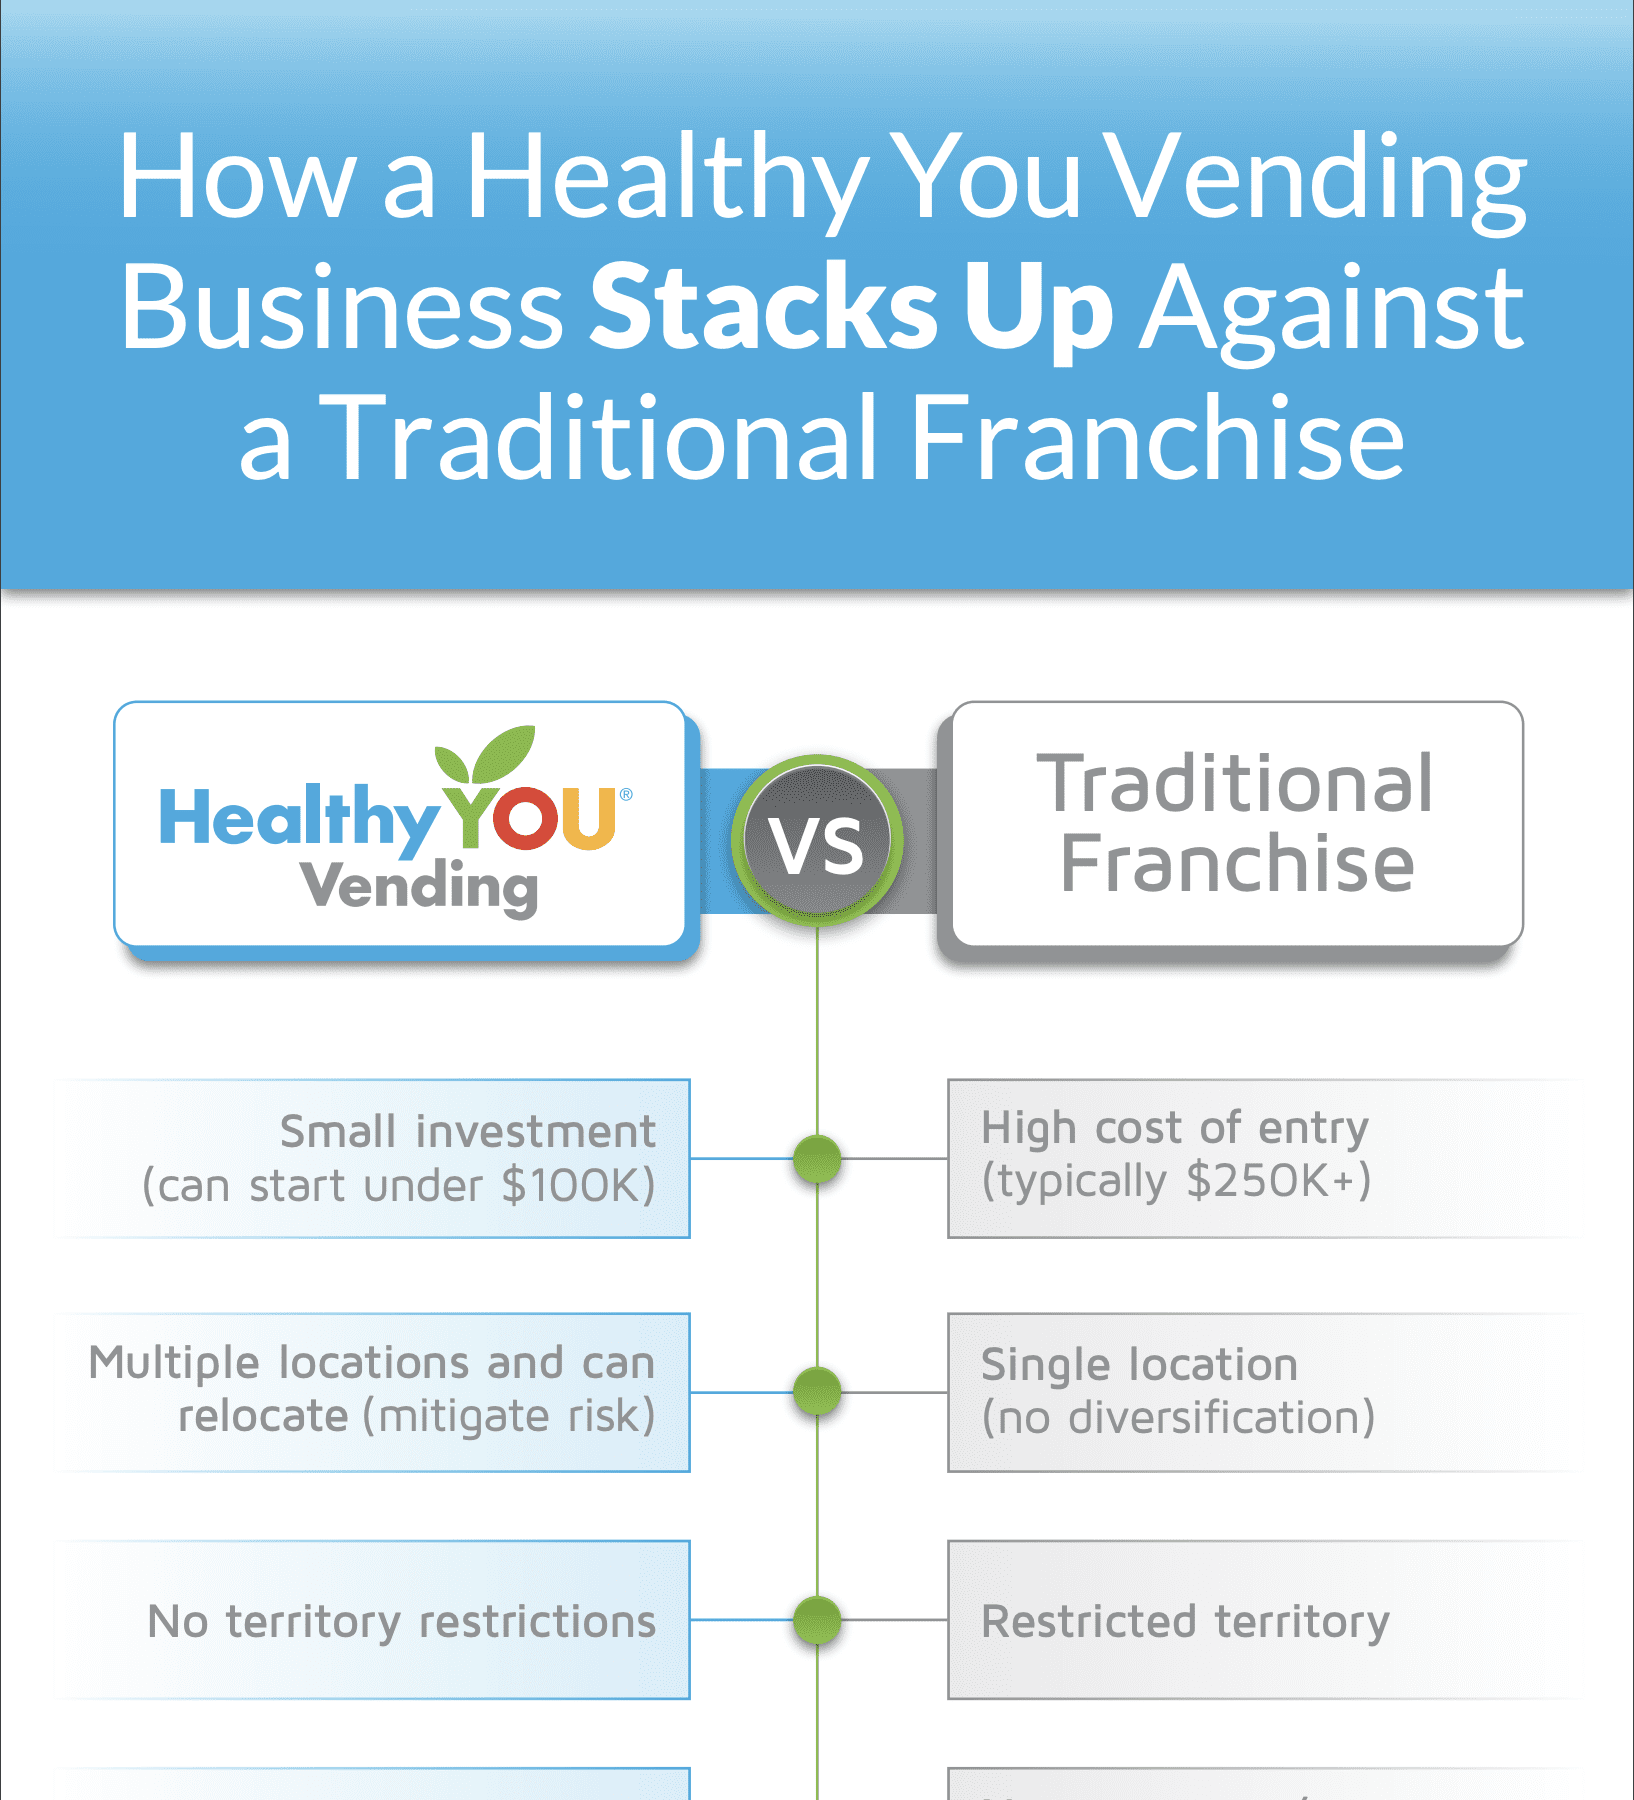 healthy you vending vs traditional franchise infographic